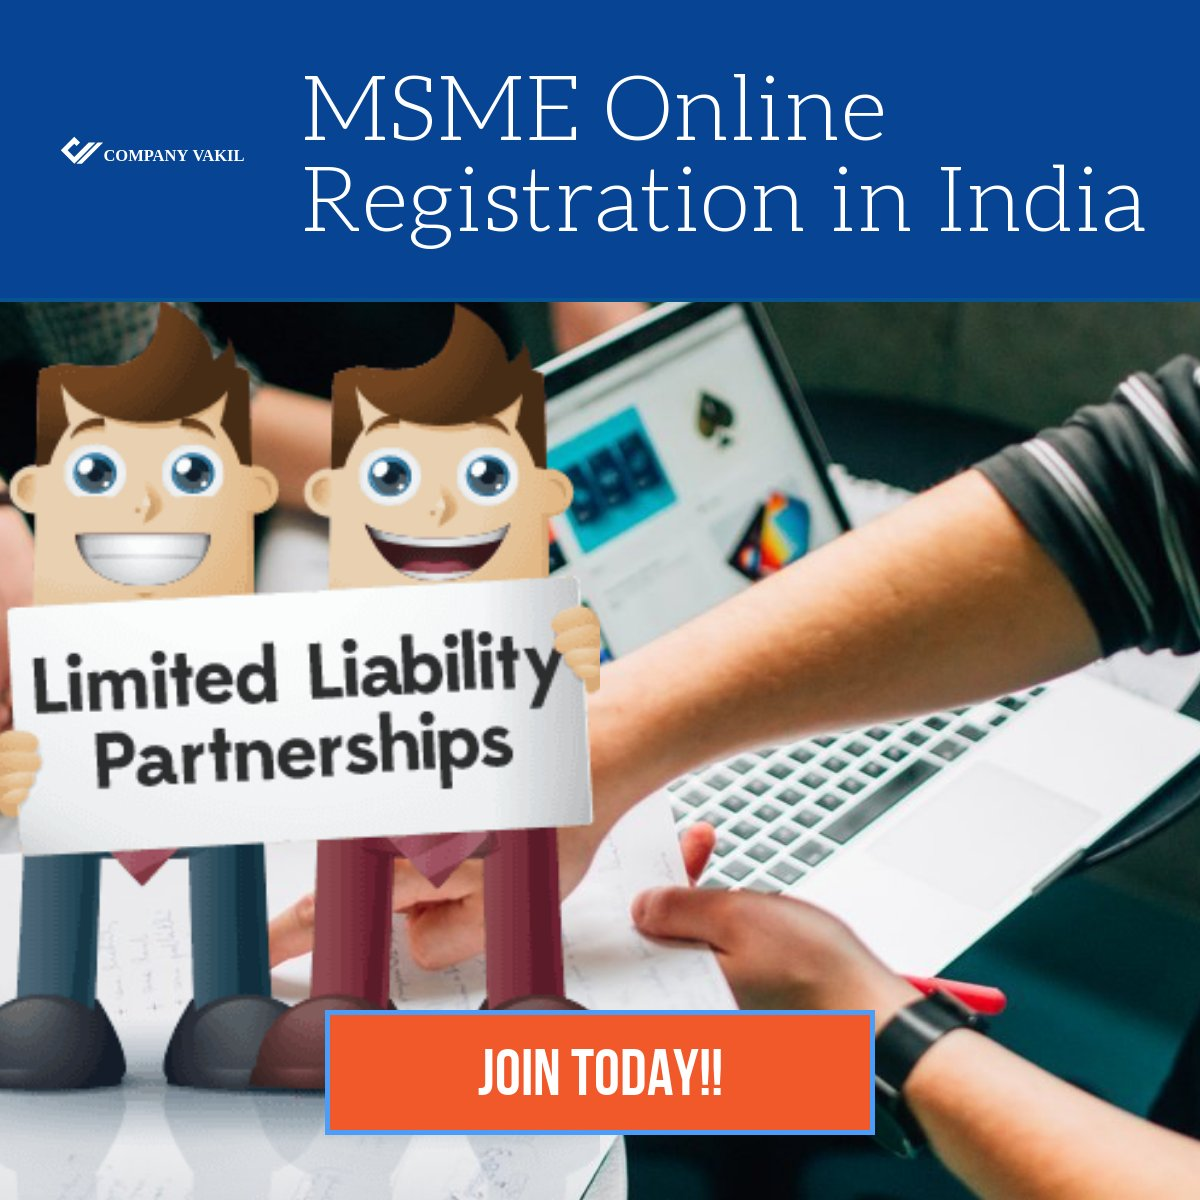 Features Of Limited Liability Partnership In India